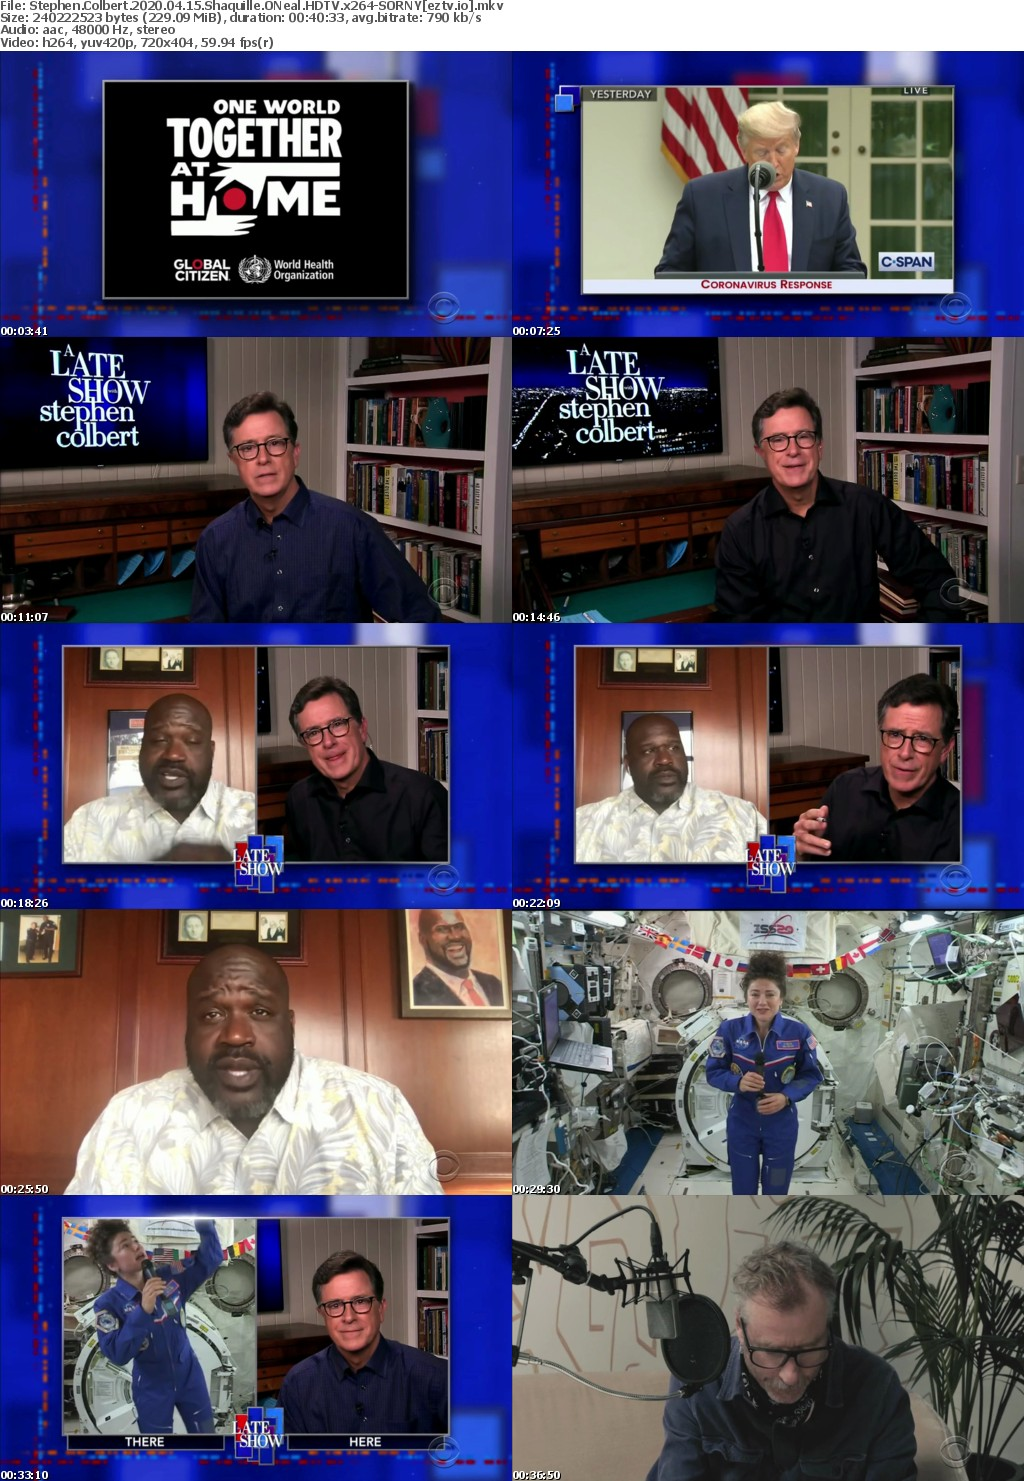 Stephen Colbert 2020 04 15 Shaquille ONeal HDTV x264-SORNY